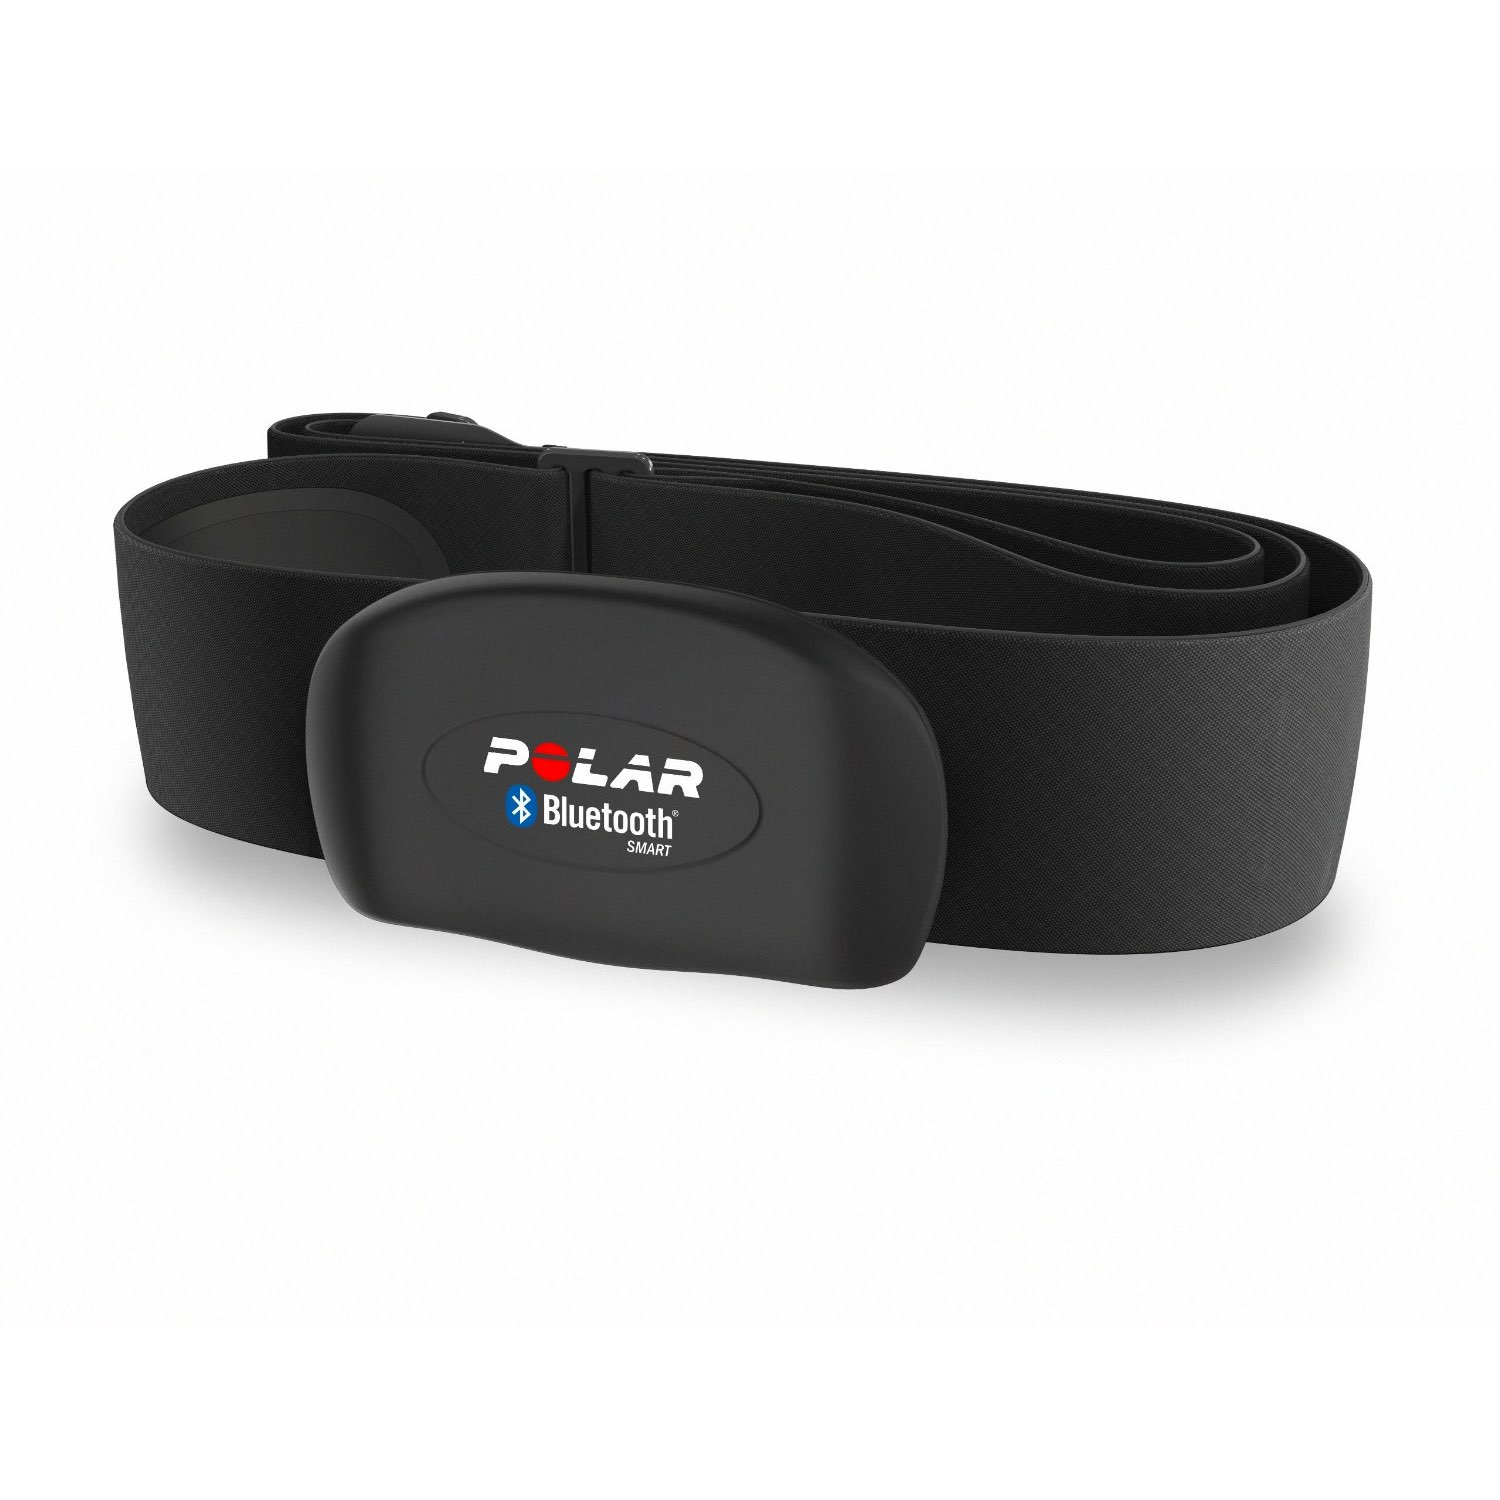 POLAR H7 HEART RATE MONITOR